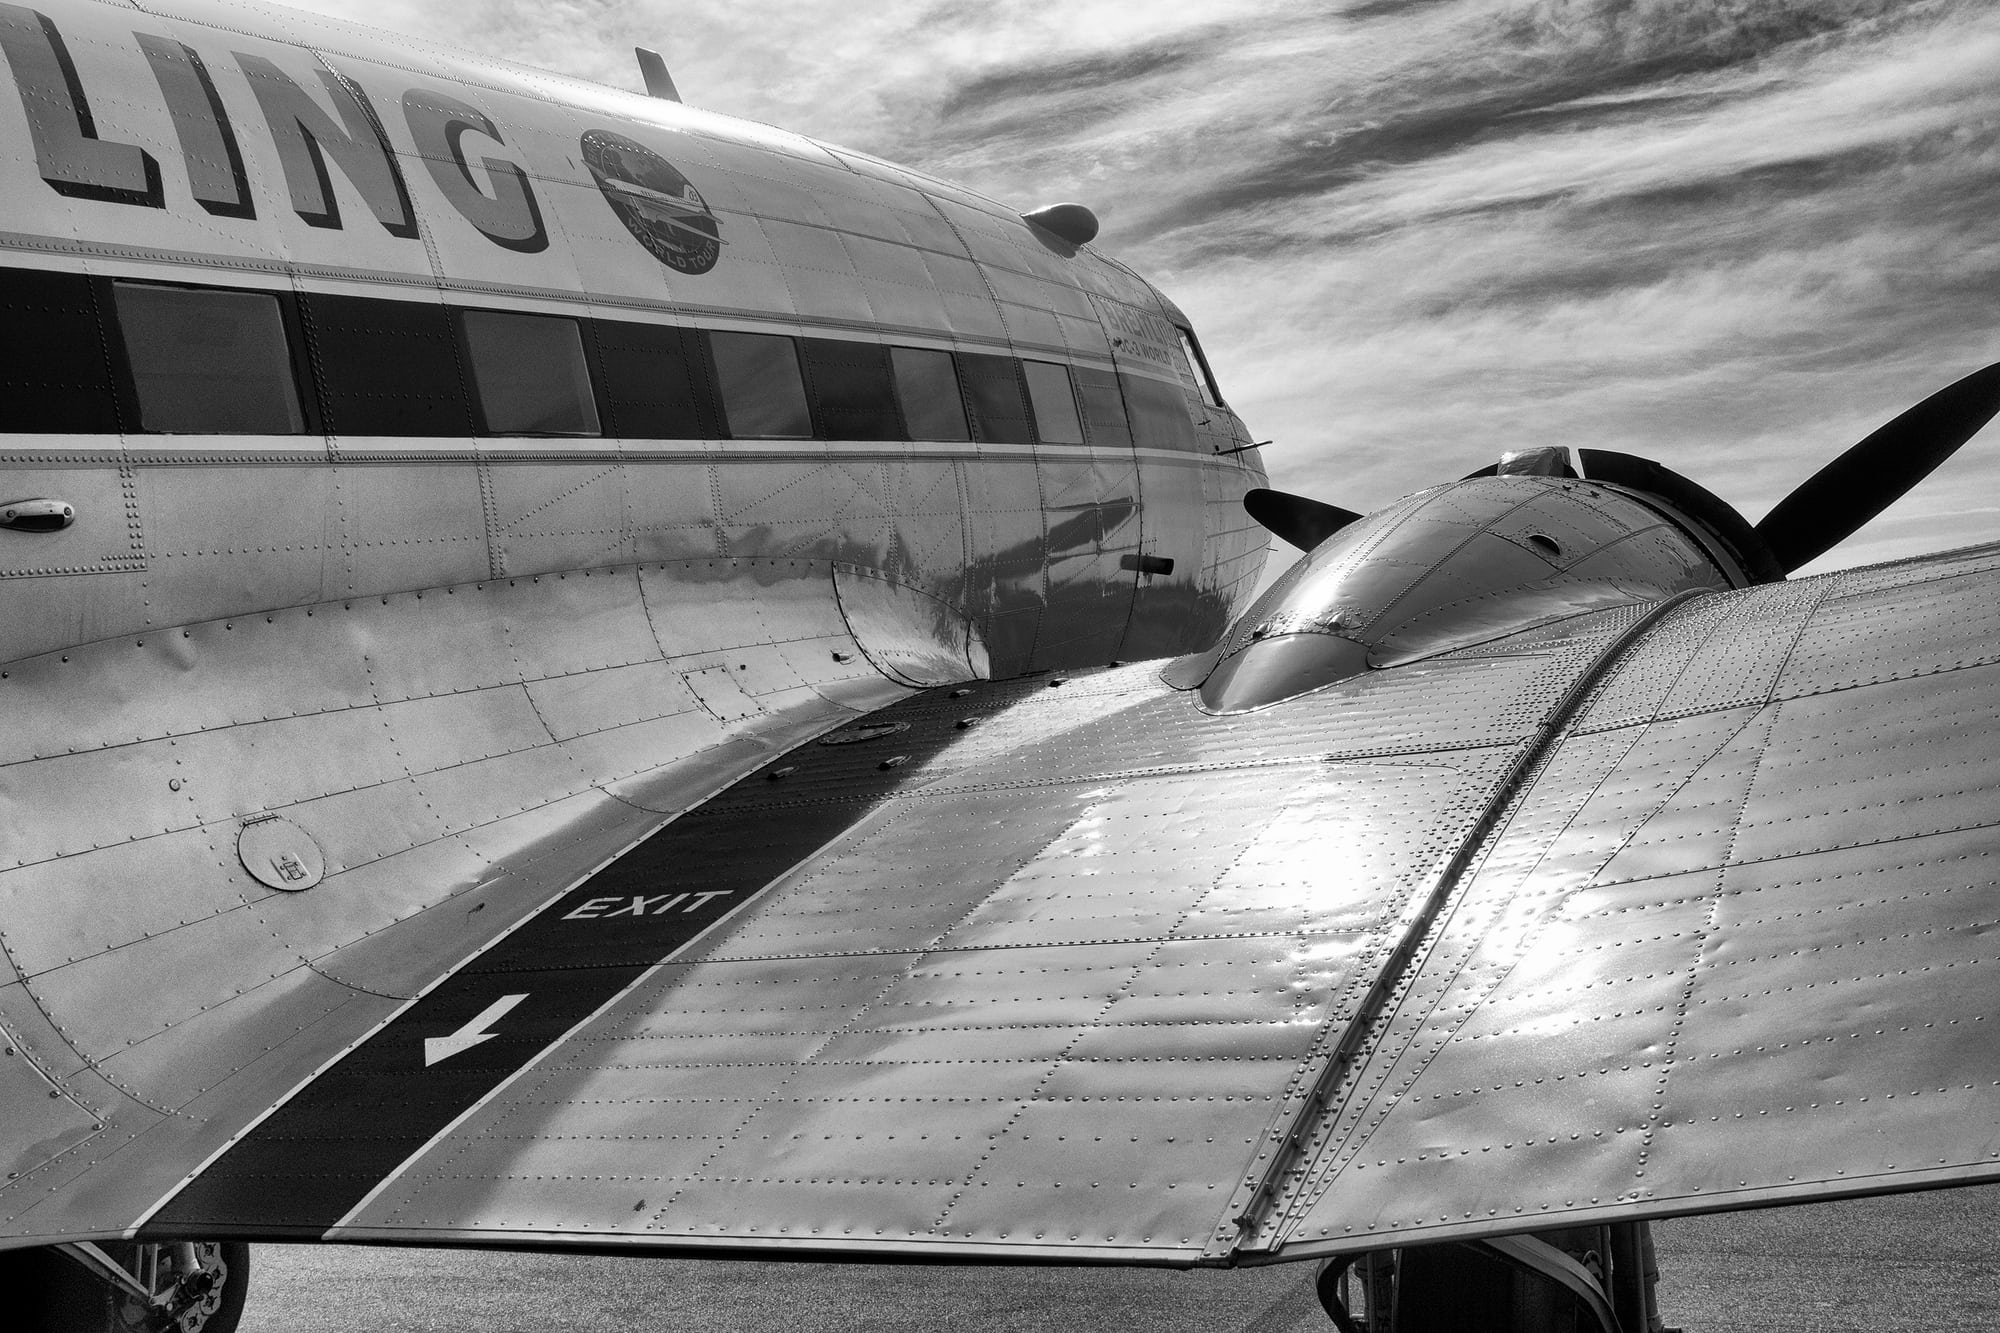 Breitling DC-3 wing root Dispatches: Breitling's DC-3 To Become Oldest Aircraft Ever To Circle The Earth Dispatches: Breitling's DC-3 To Become Oldest Aircraft Ever To Circle The Earth P8212246 bw